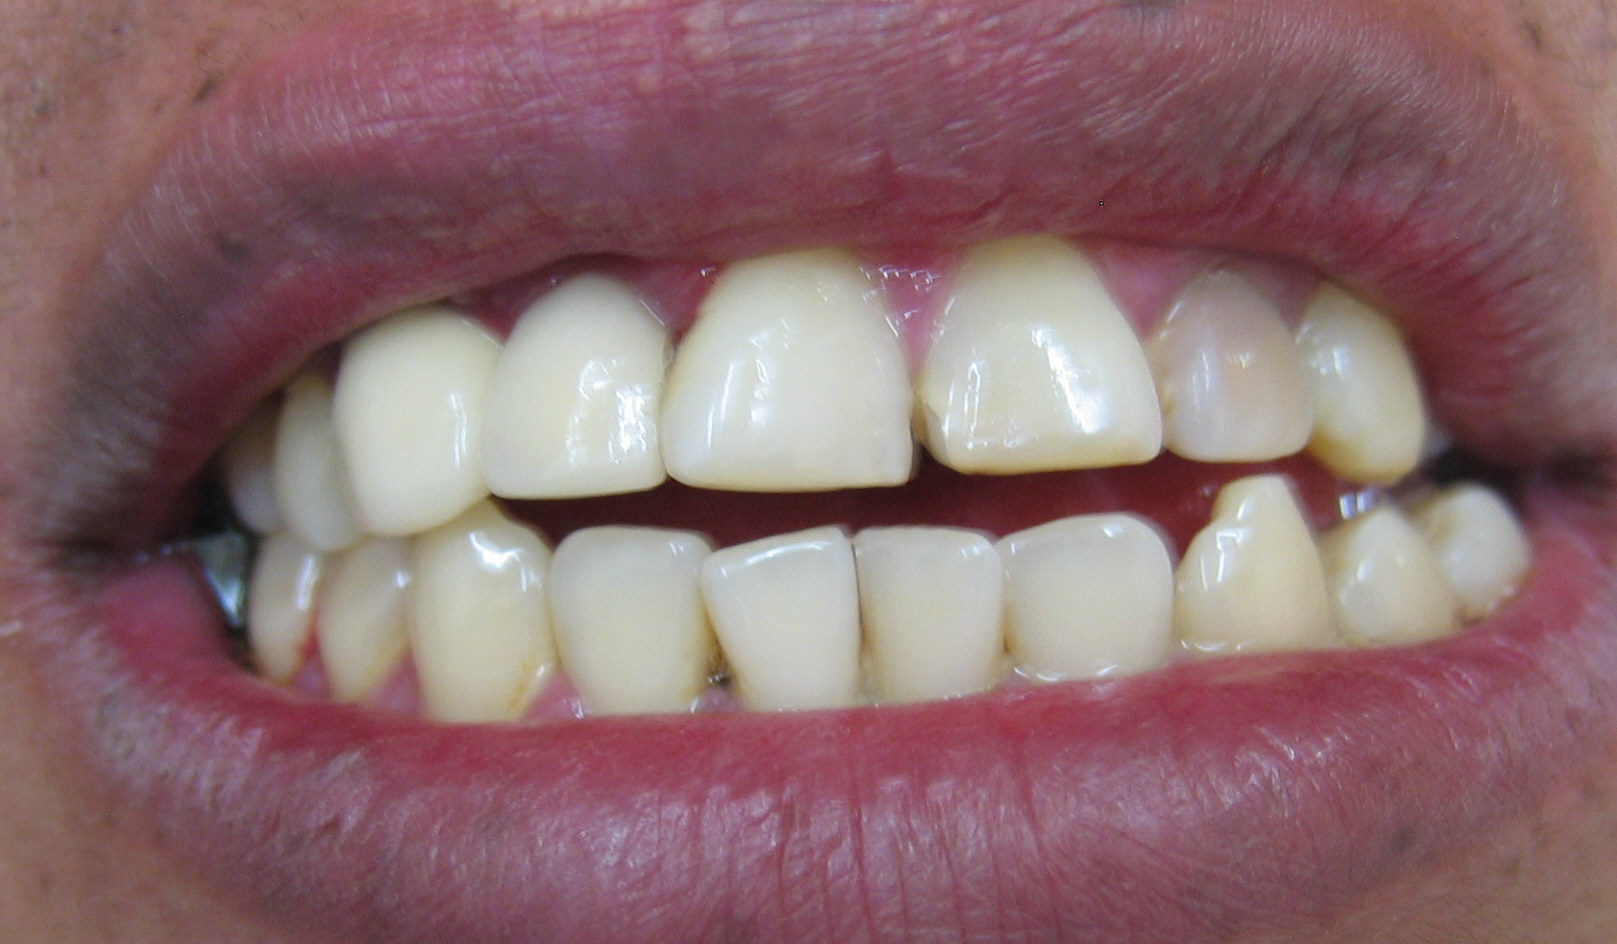 Deciding on Dental Veneers - Addicted To All Things Pretty